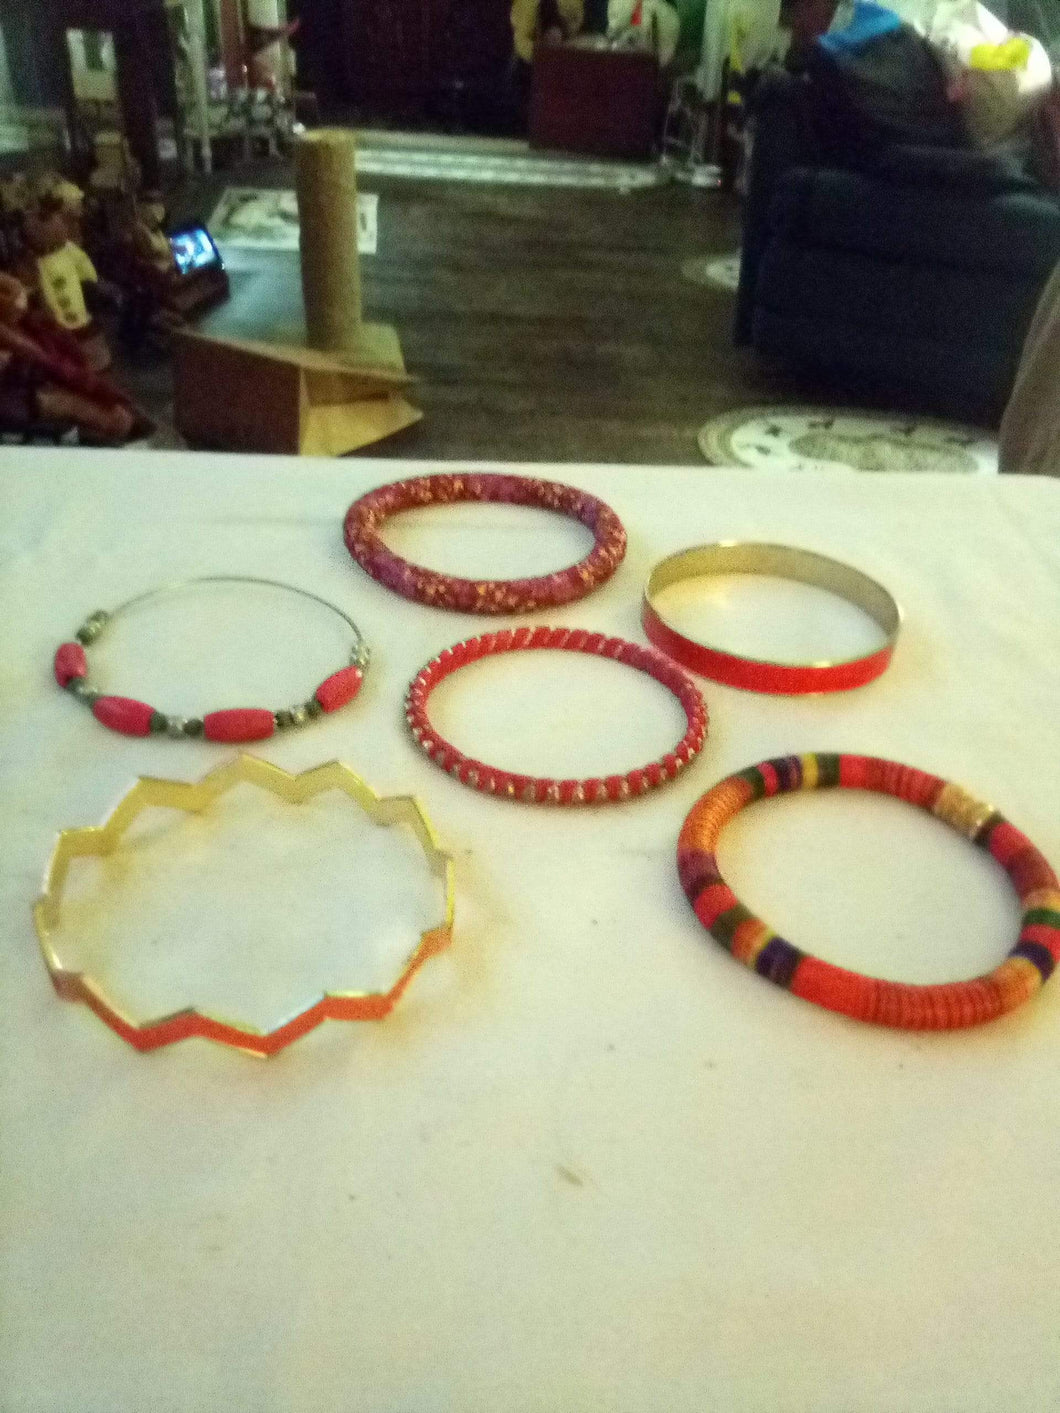 Nice lot of 6 colorful pink bracelets - B&P'sringsnthings